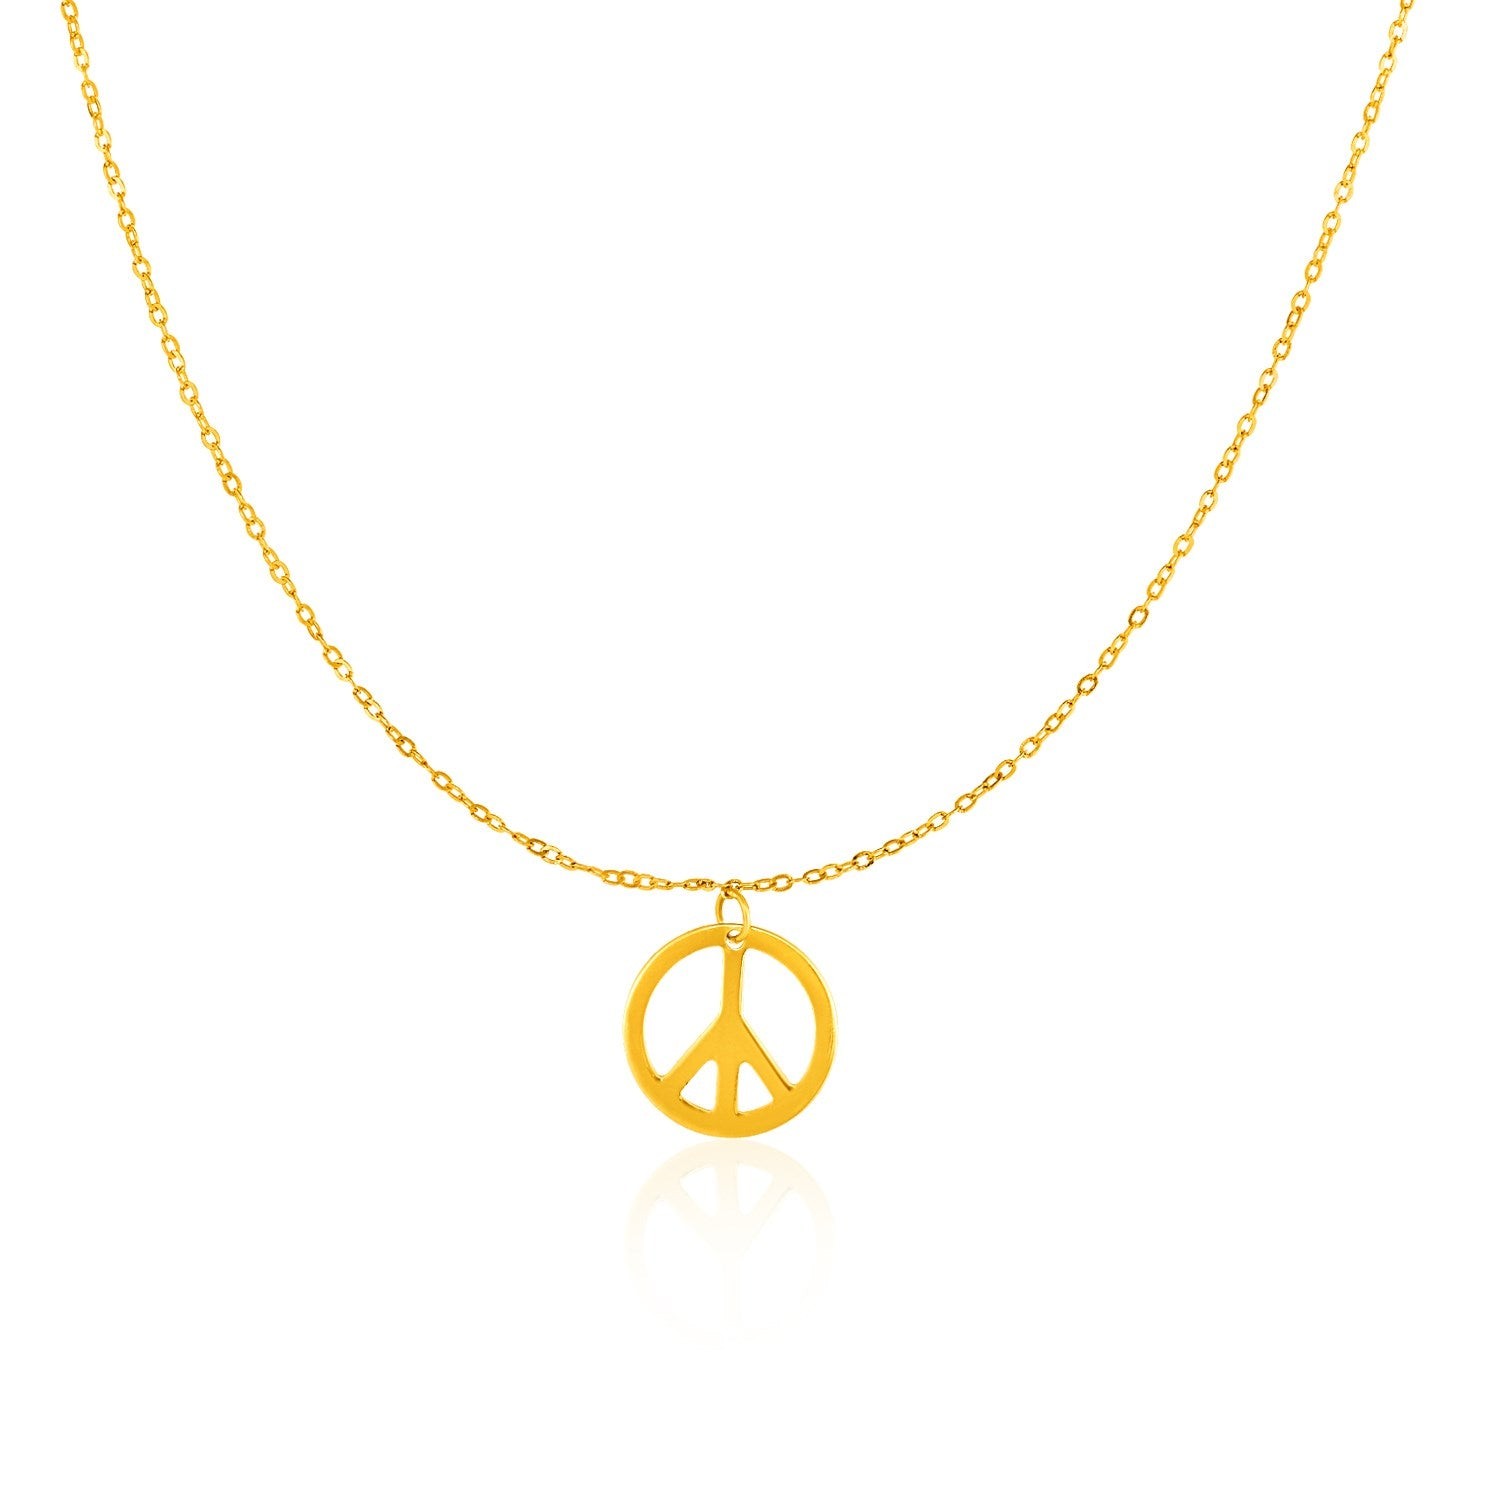 14k Yellow Gold with Peace Symbol Pendant